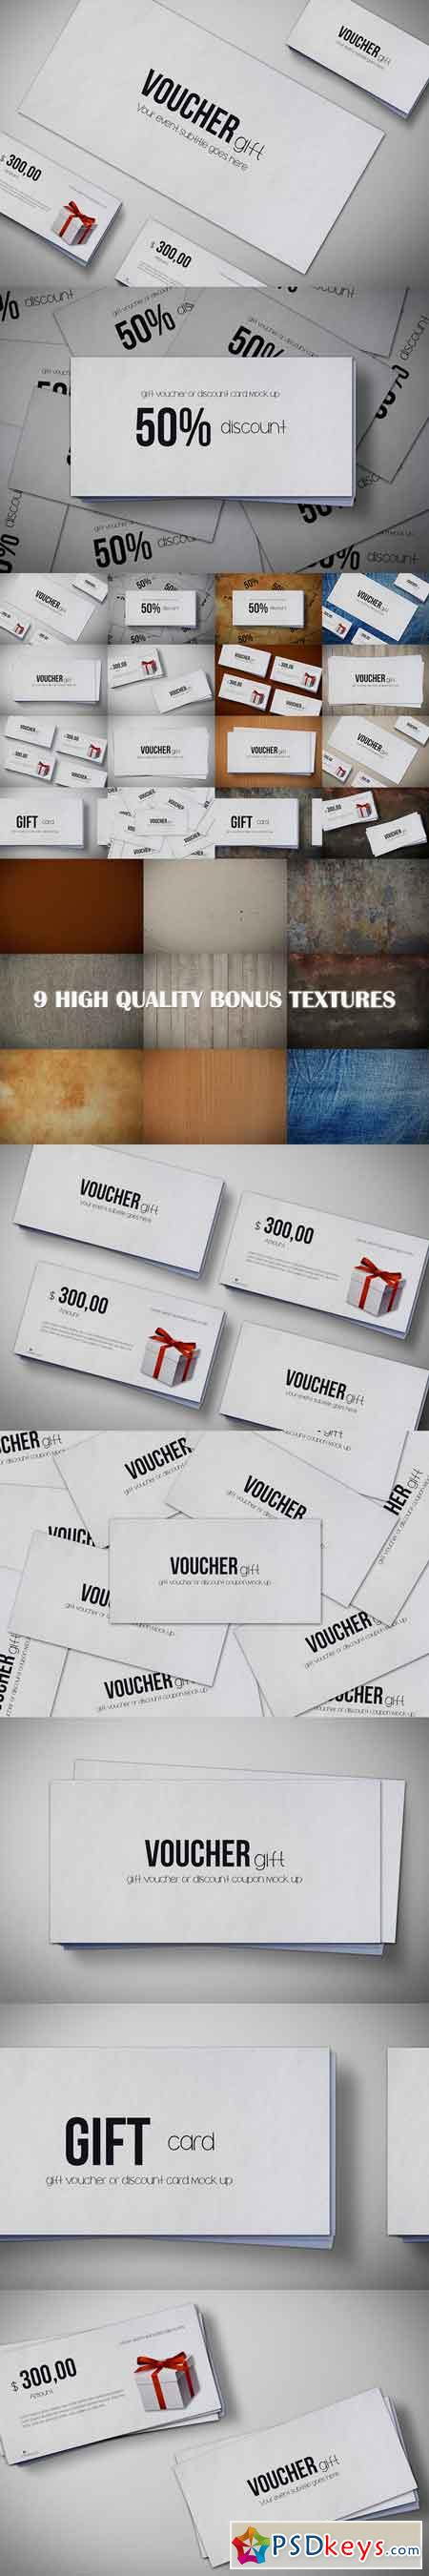 Gift voucher Mock Up Pack 685902